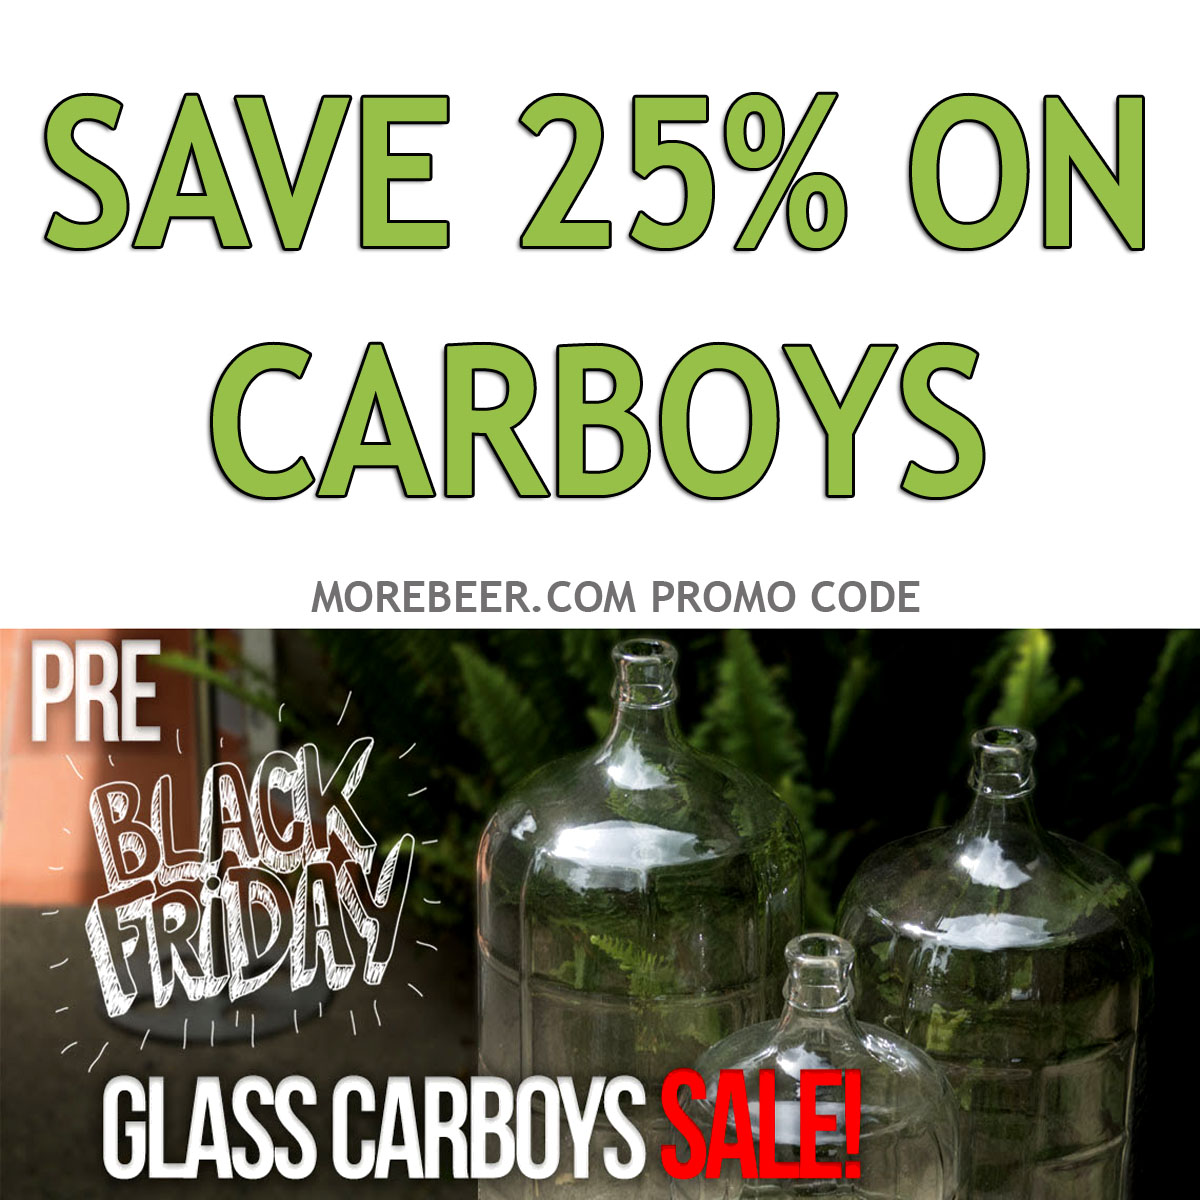 Home Brewer Promo Code for Save 25% On Carboys At MoreBeer.com Plus Free Shipping On Orders Over $59 Coupon Code